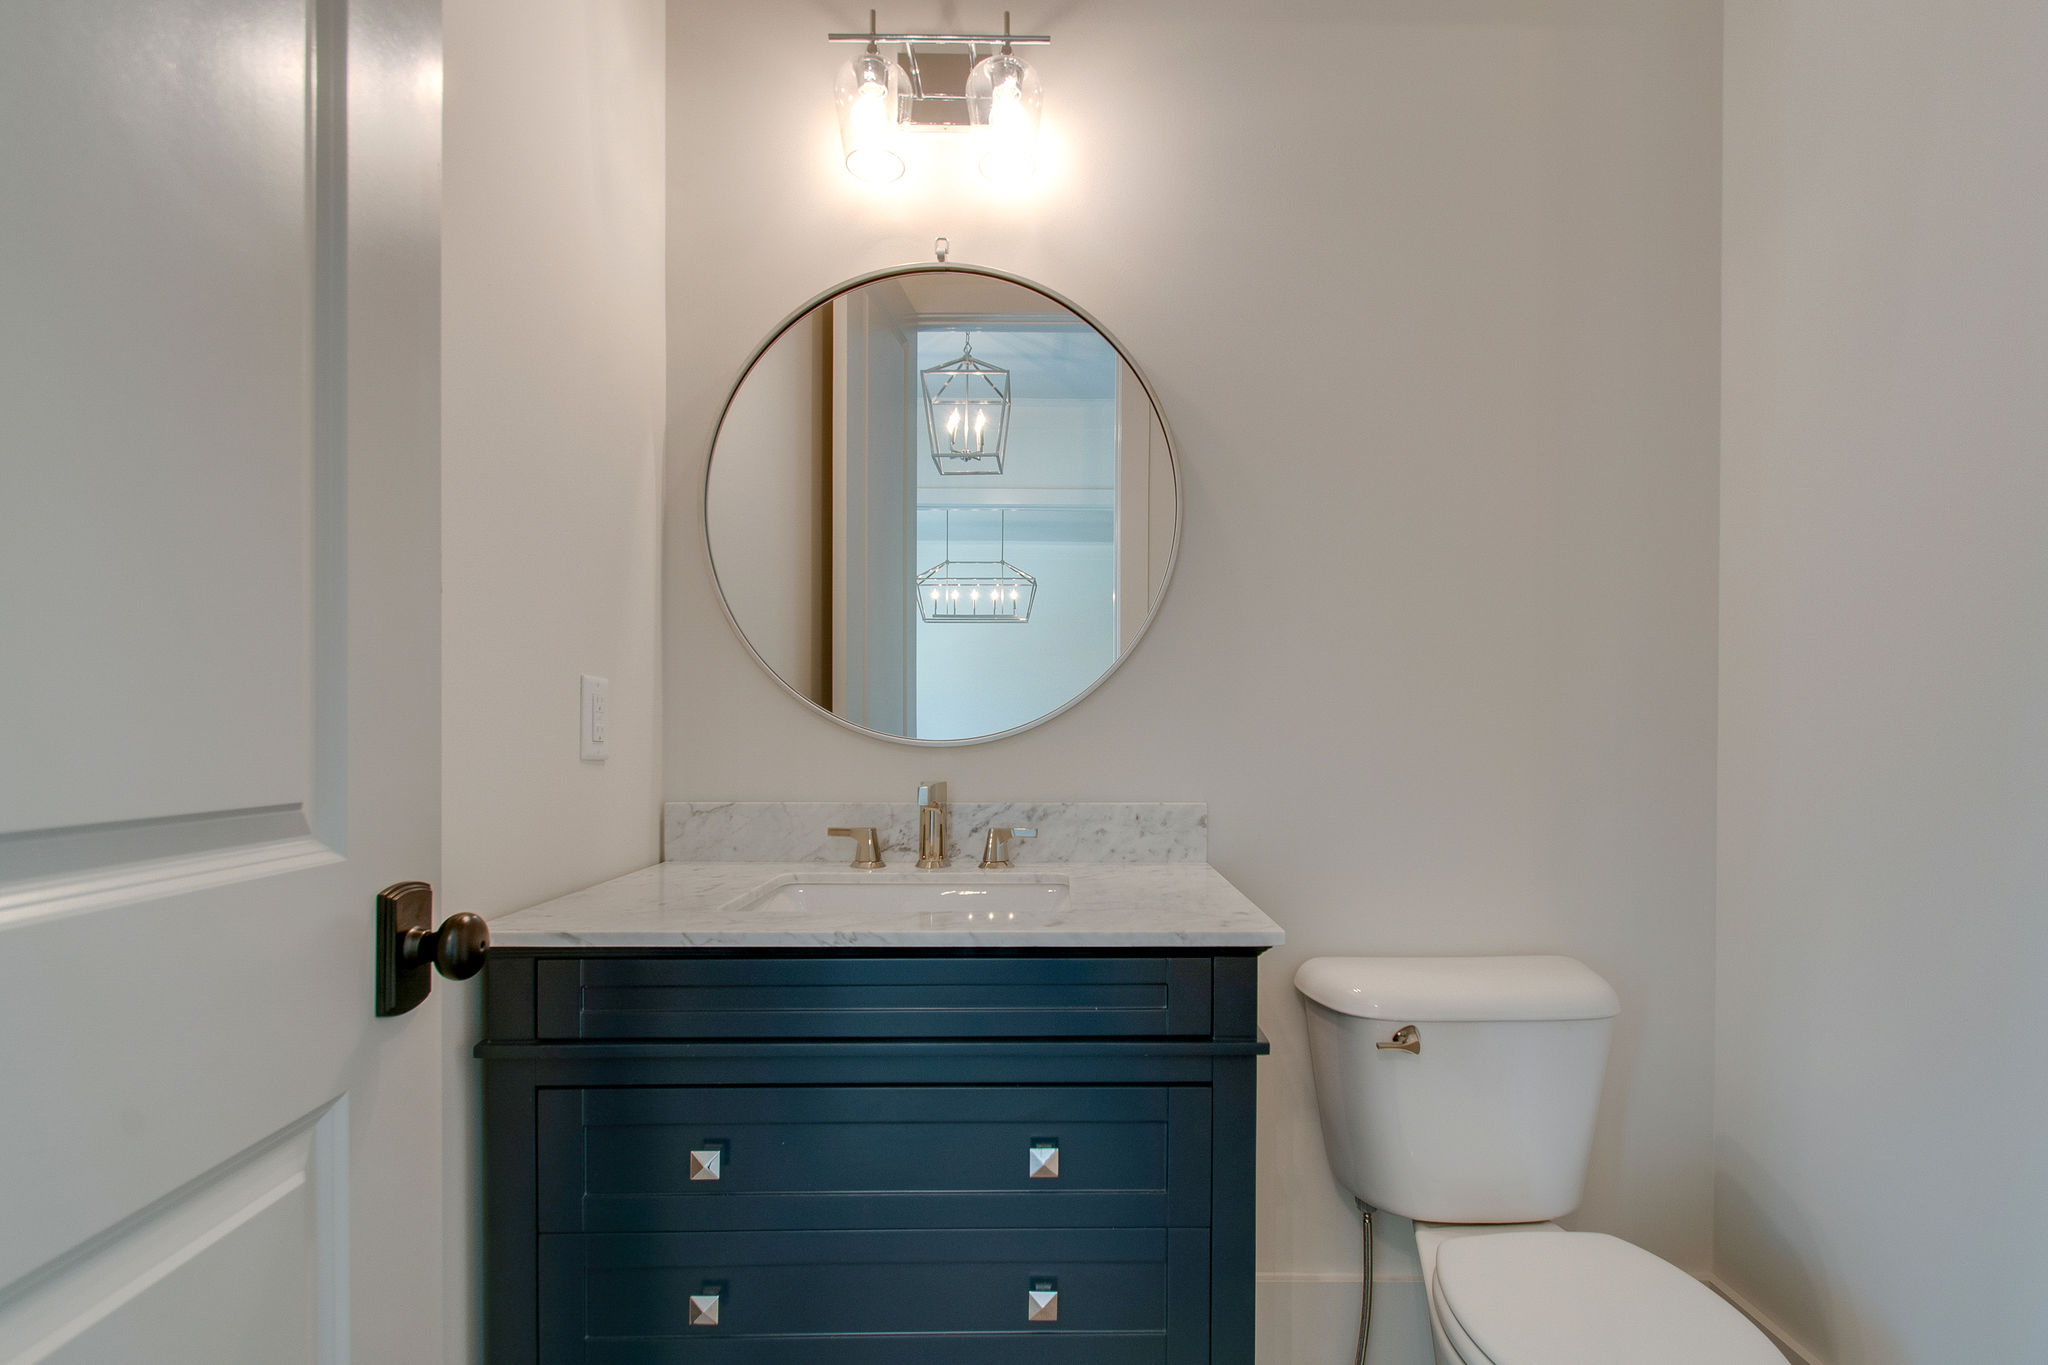 New Home with guest bathroom in Franklin, Brentwood, and Thompson Station TN with Custom Home Design